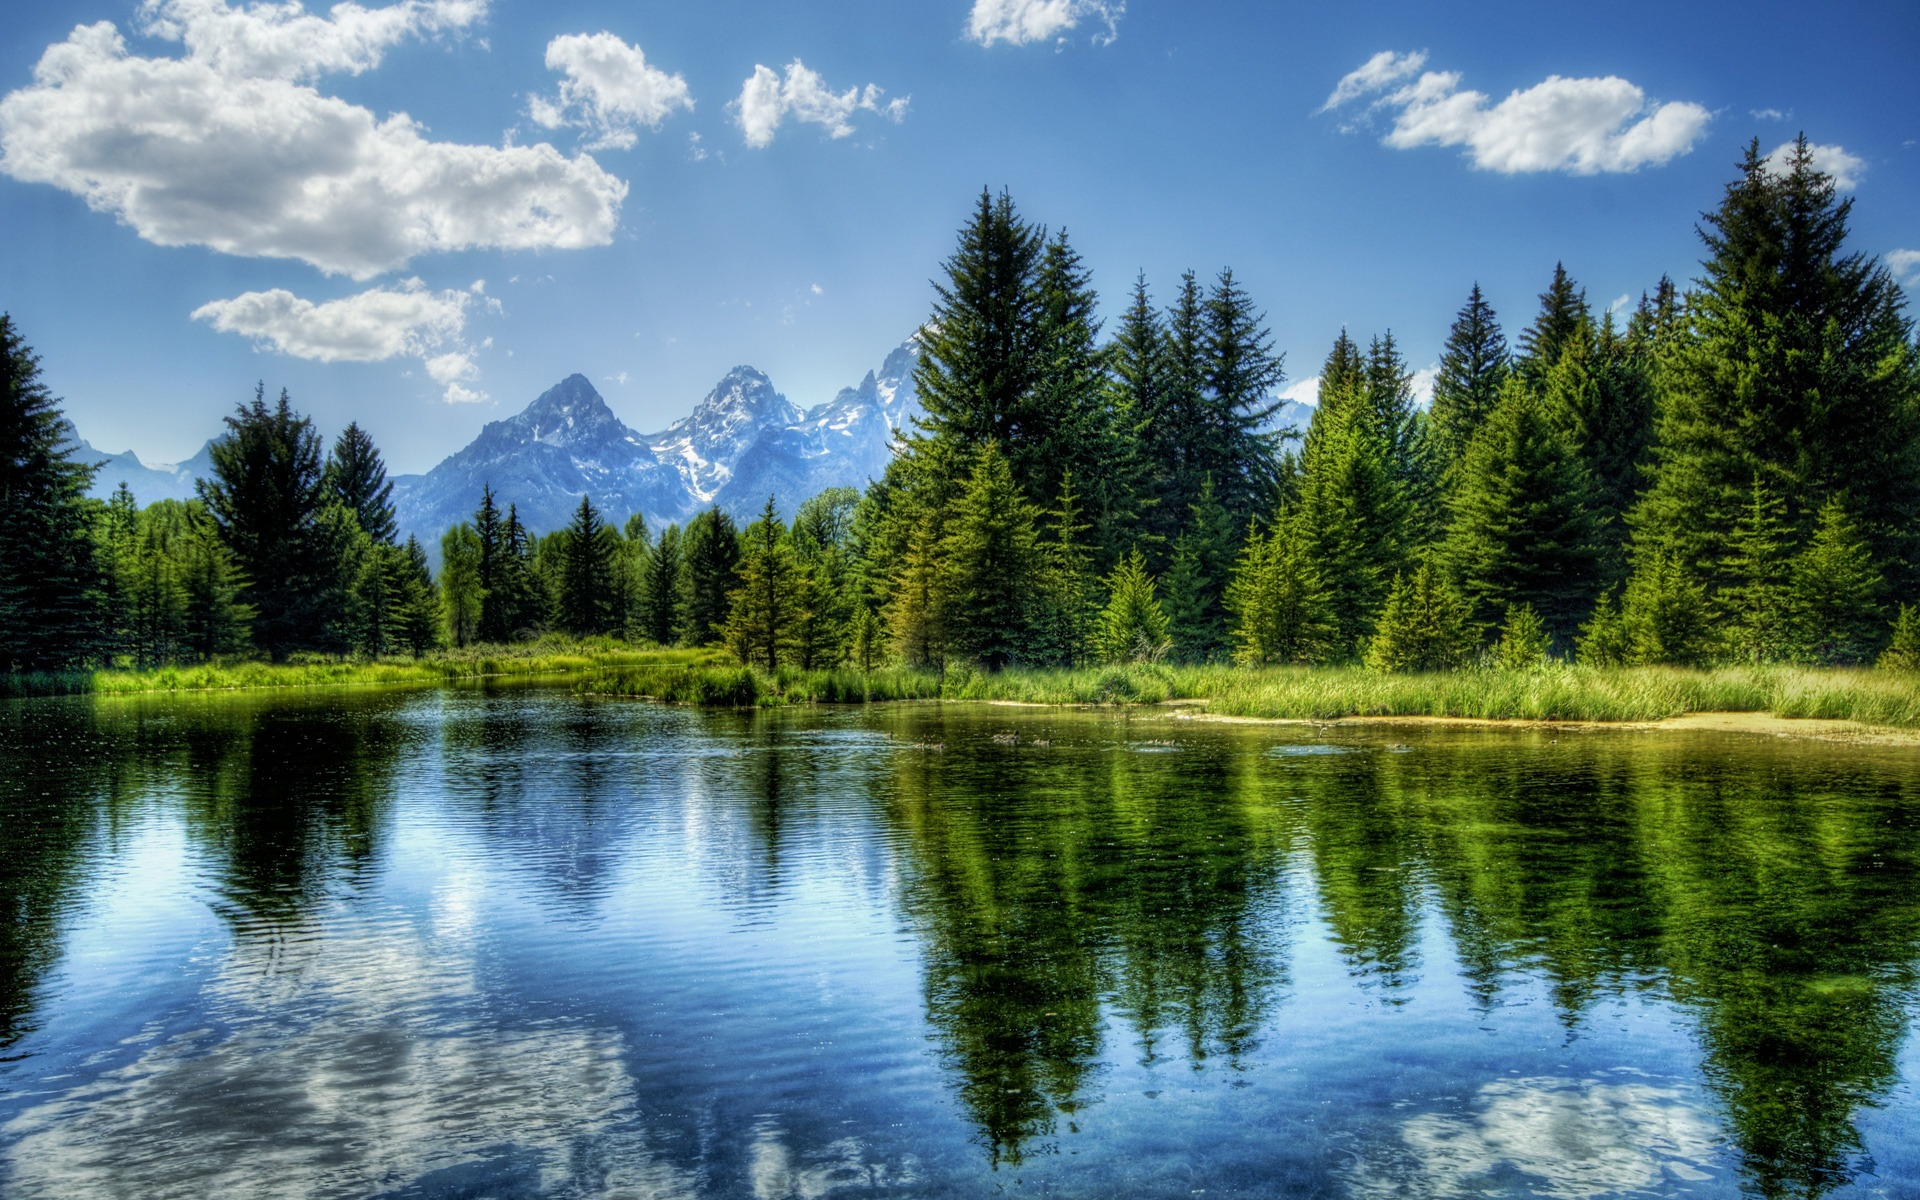 peaceful lake wallpaper landscape nature wallpapers in jpg format